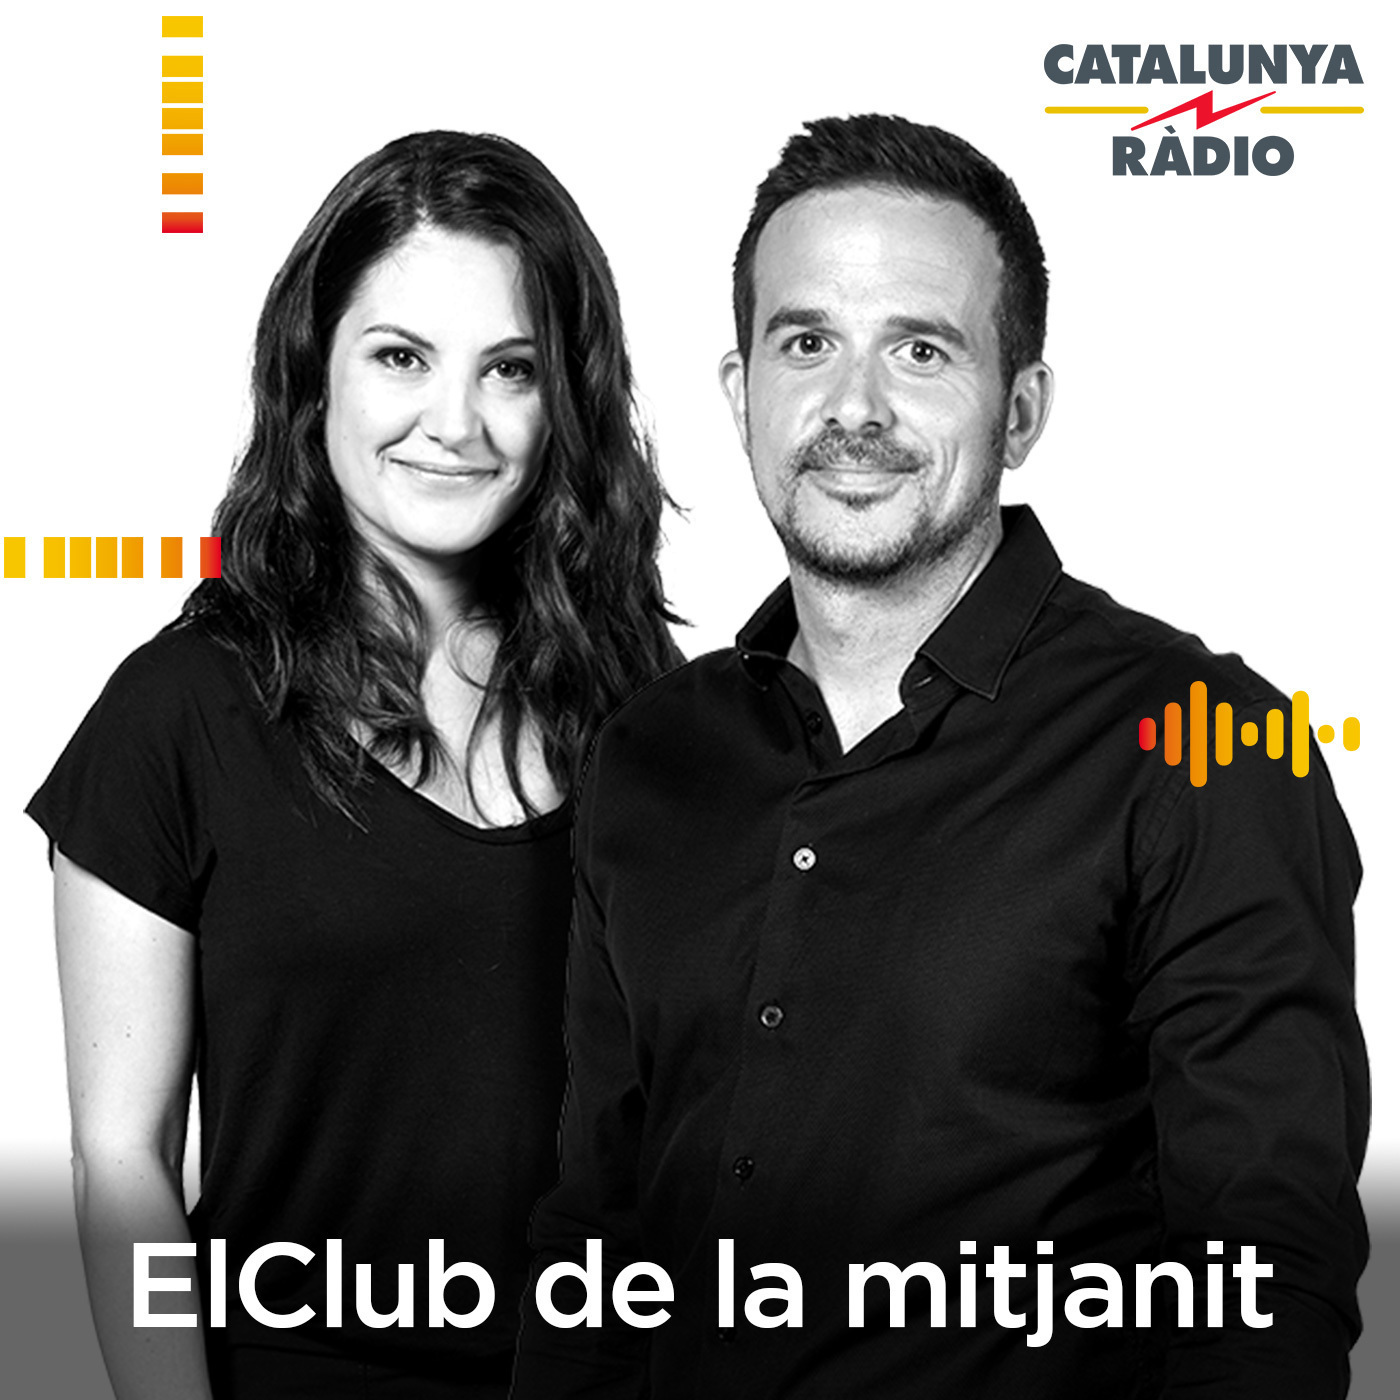 El club de la mitjanit - HOME EDITION - 17/04/2020